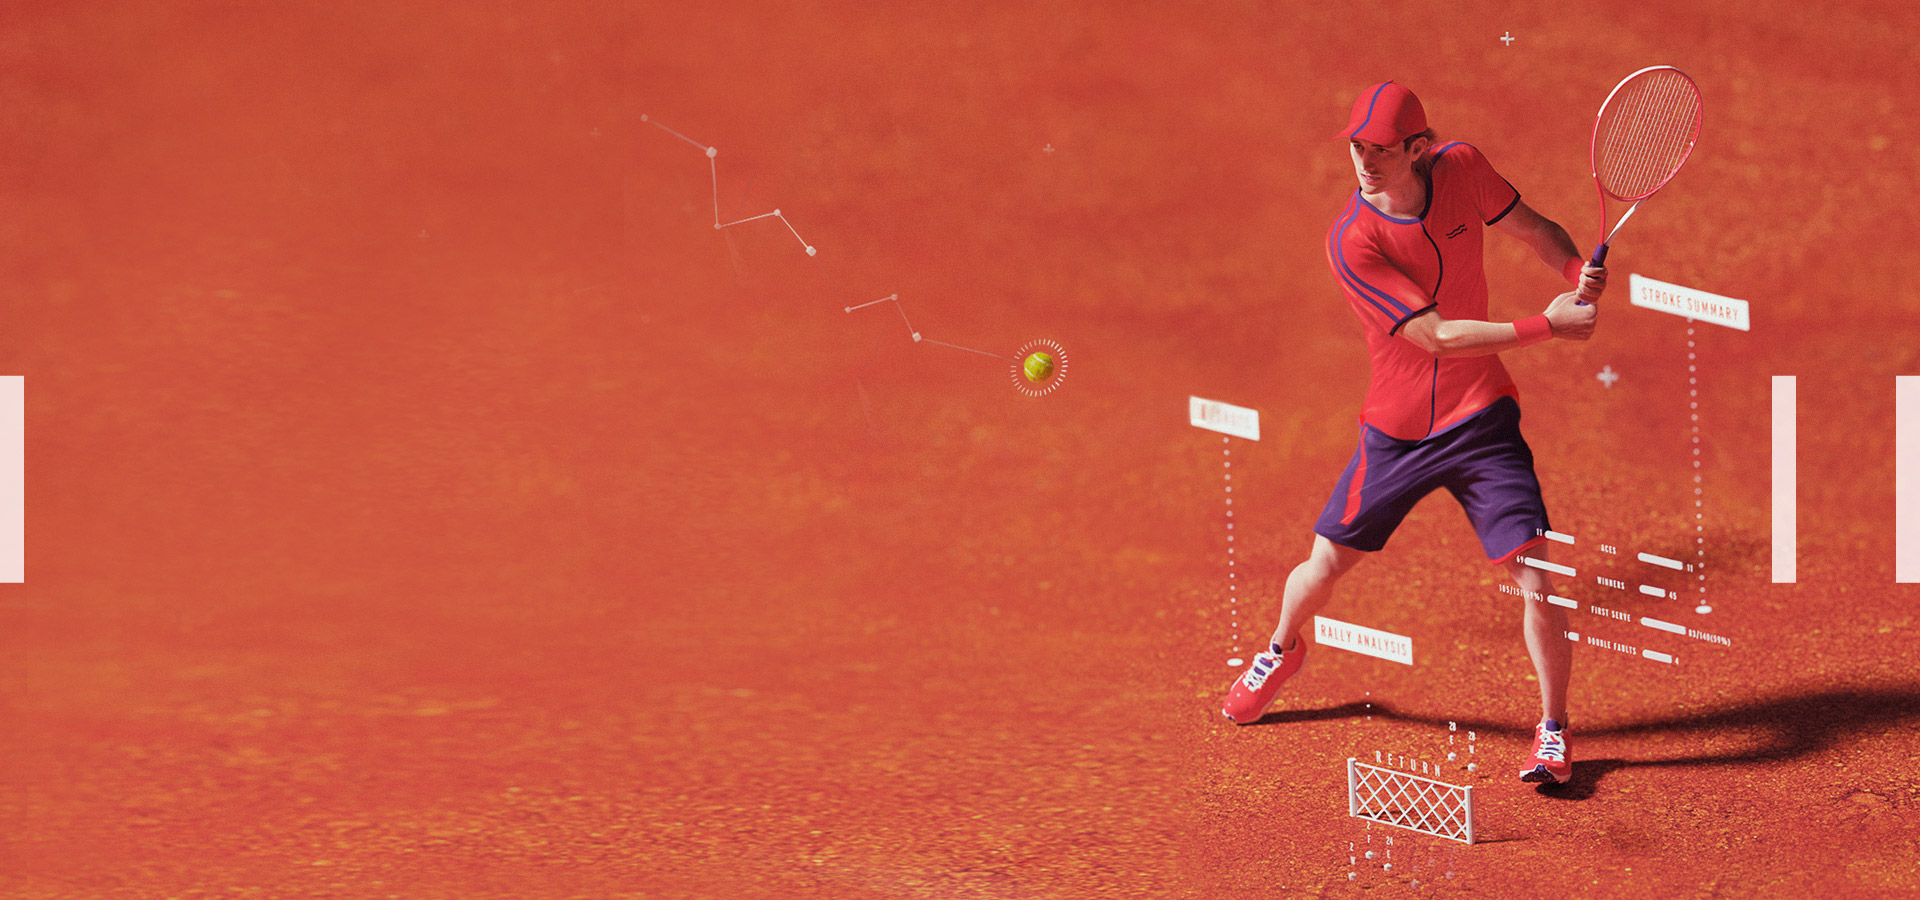 Infosys and Roland-Garros Empower Players, Fans and Media with New Digital Innovations